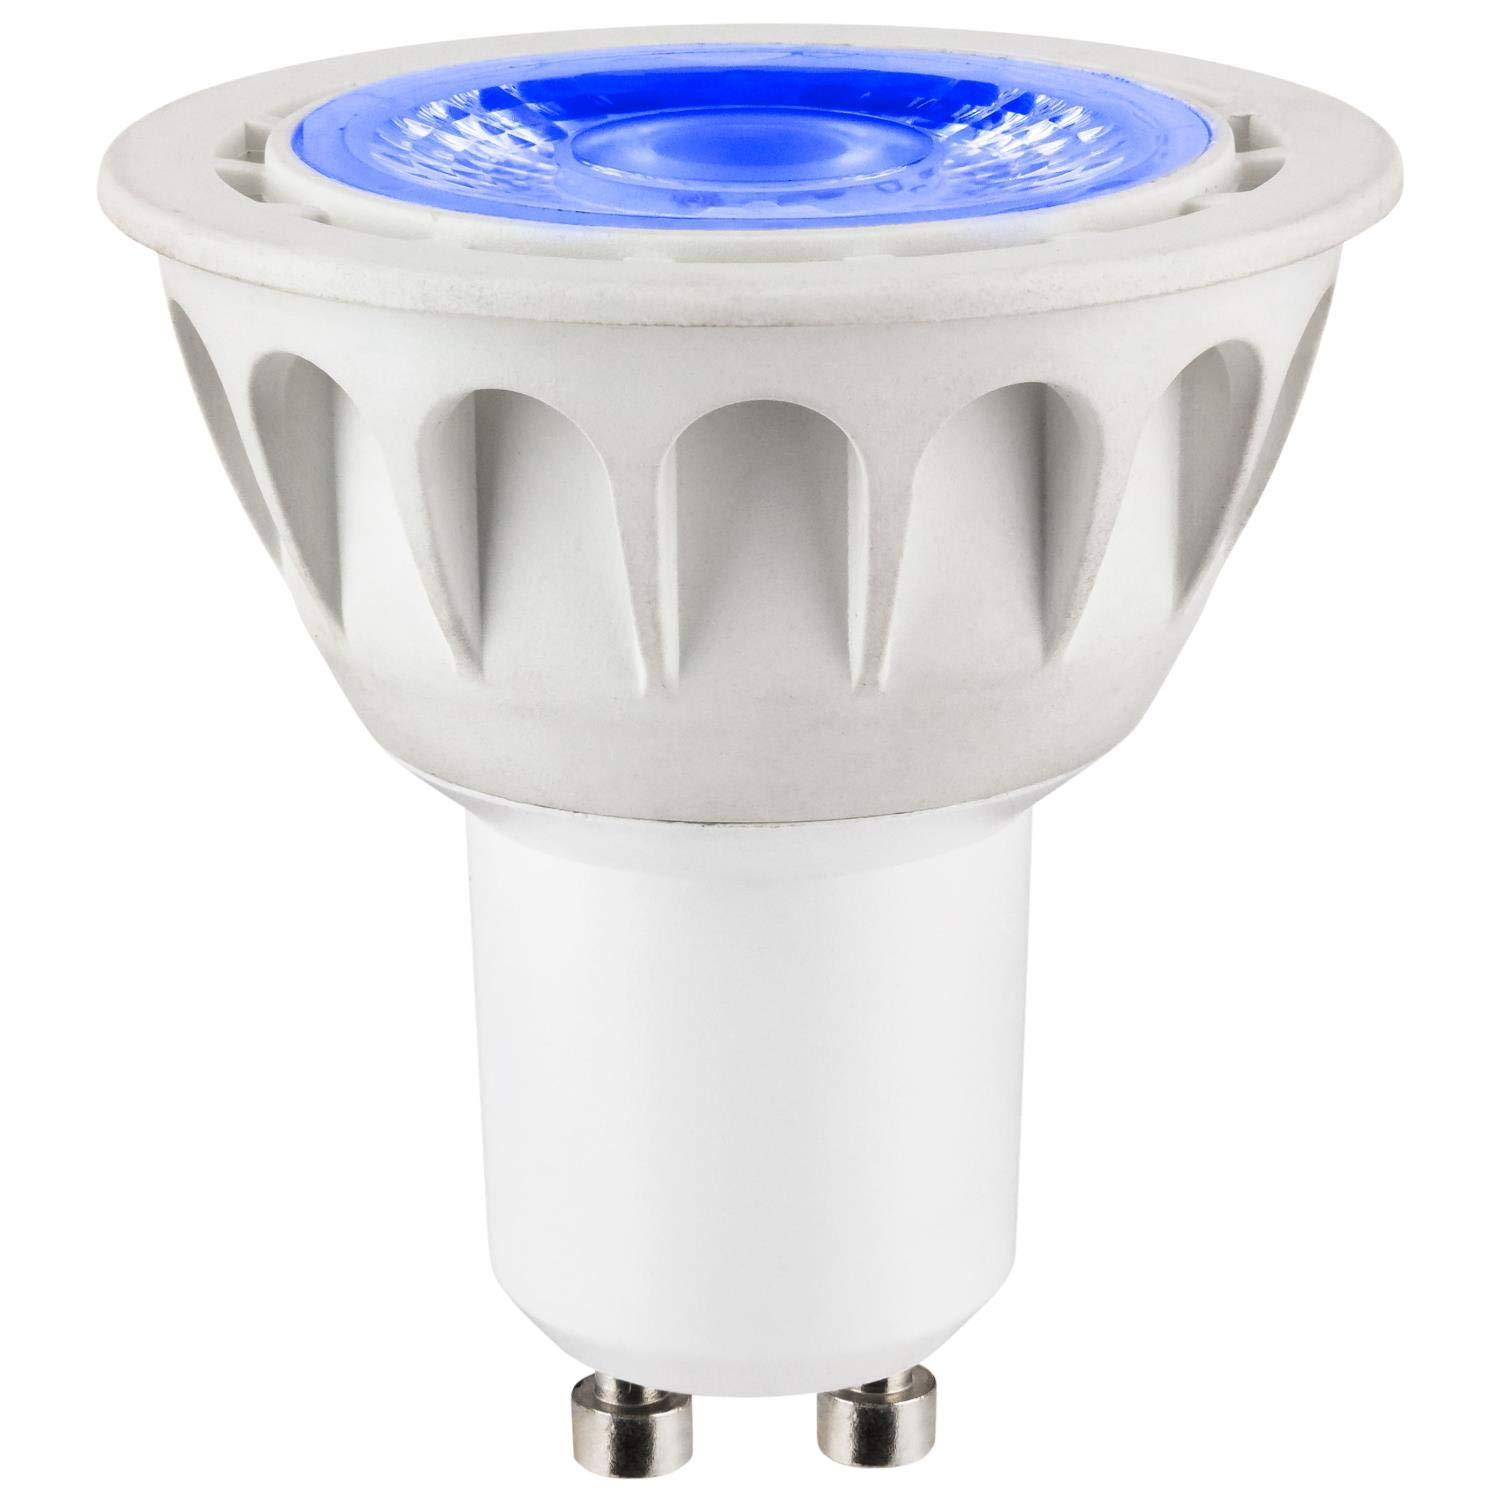 SU Light 80520 Bulb12 Watts25W LED Volt3 PAR16 Sunlite dBWCxore